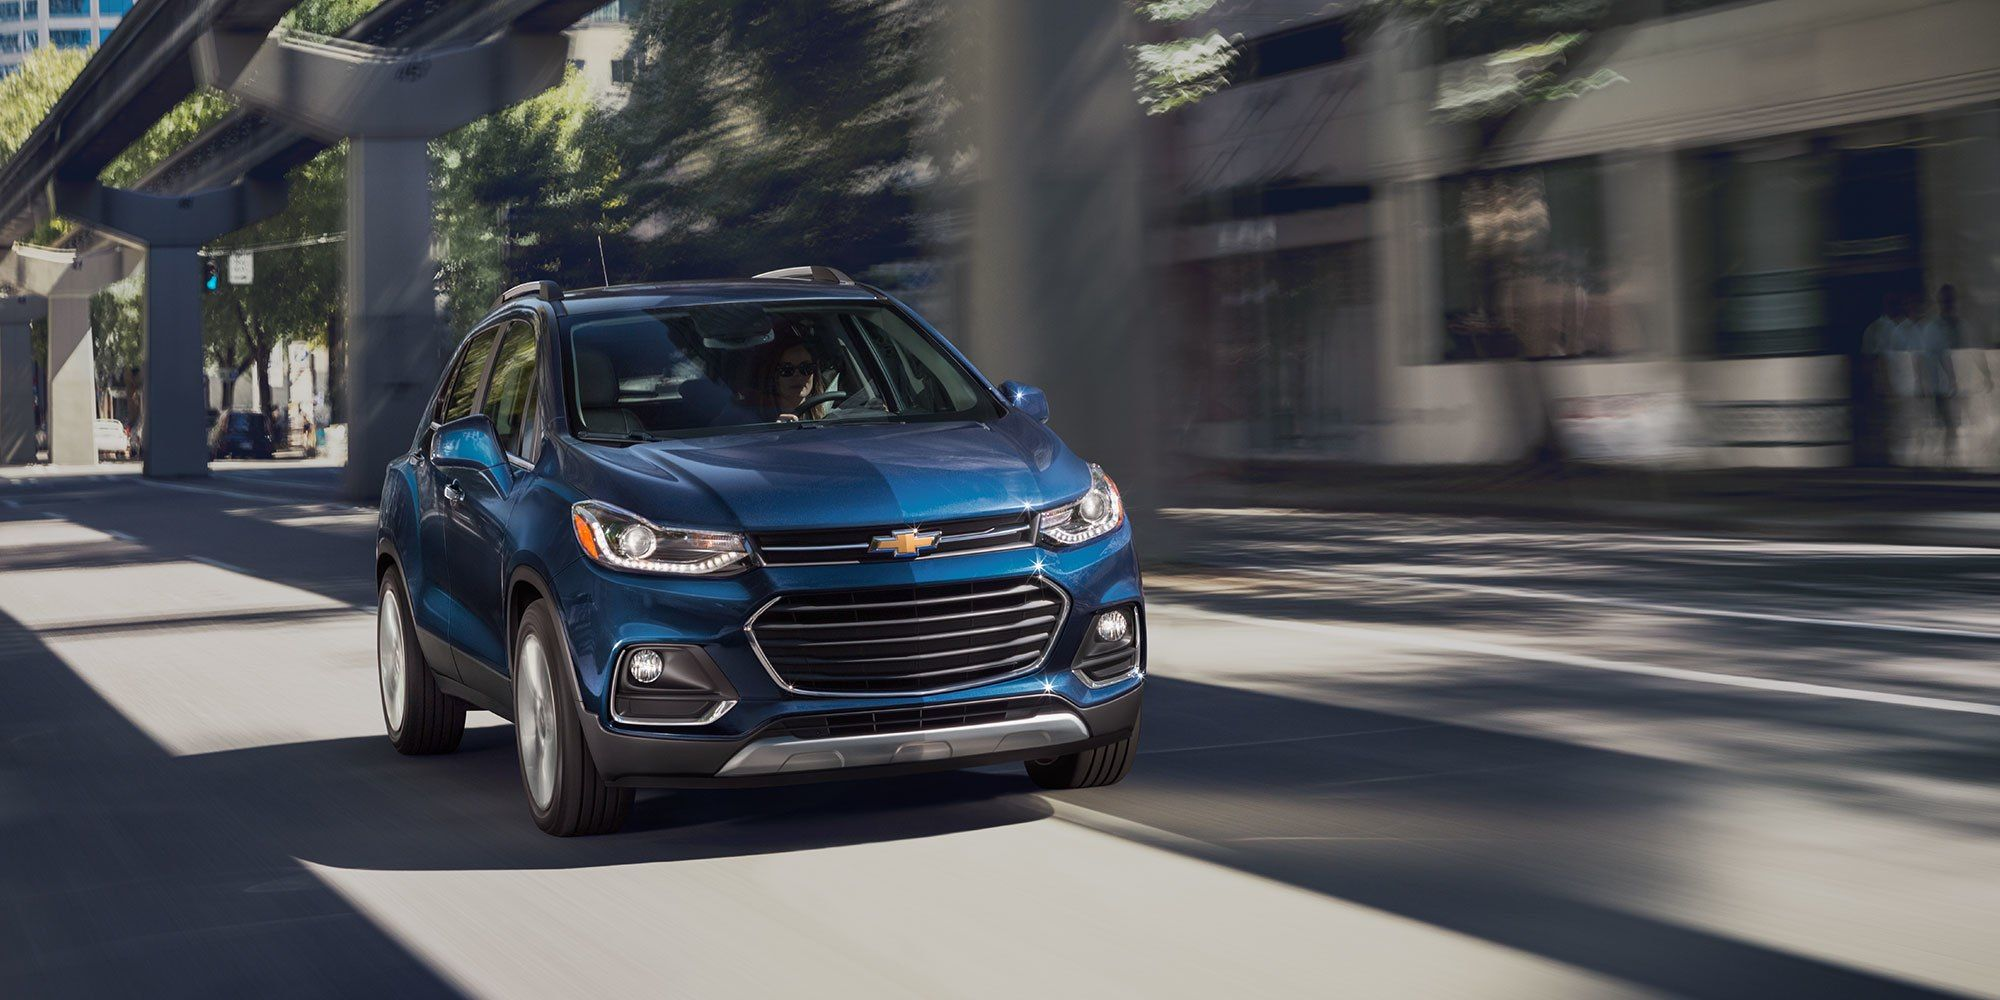 2019 Chevrolet Trax At Westside Chevrolet In Houston 2019cars